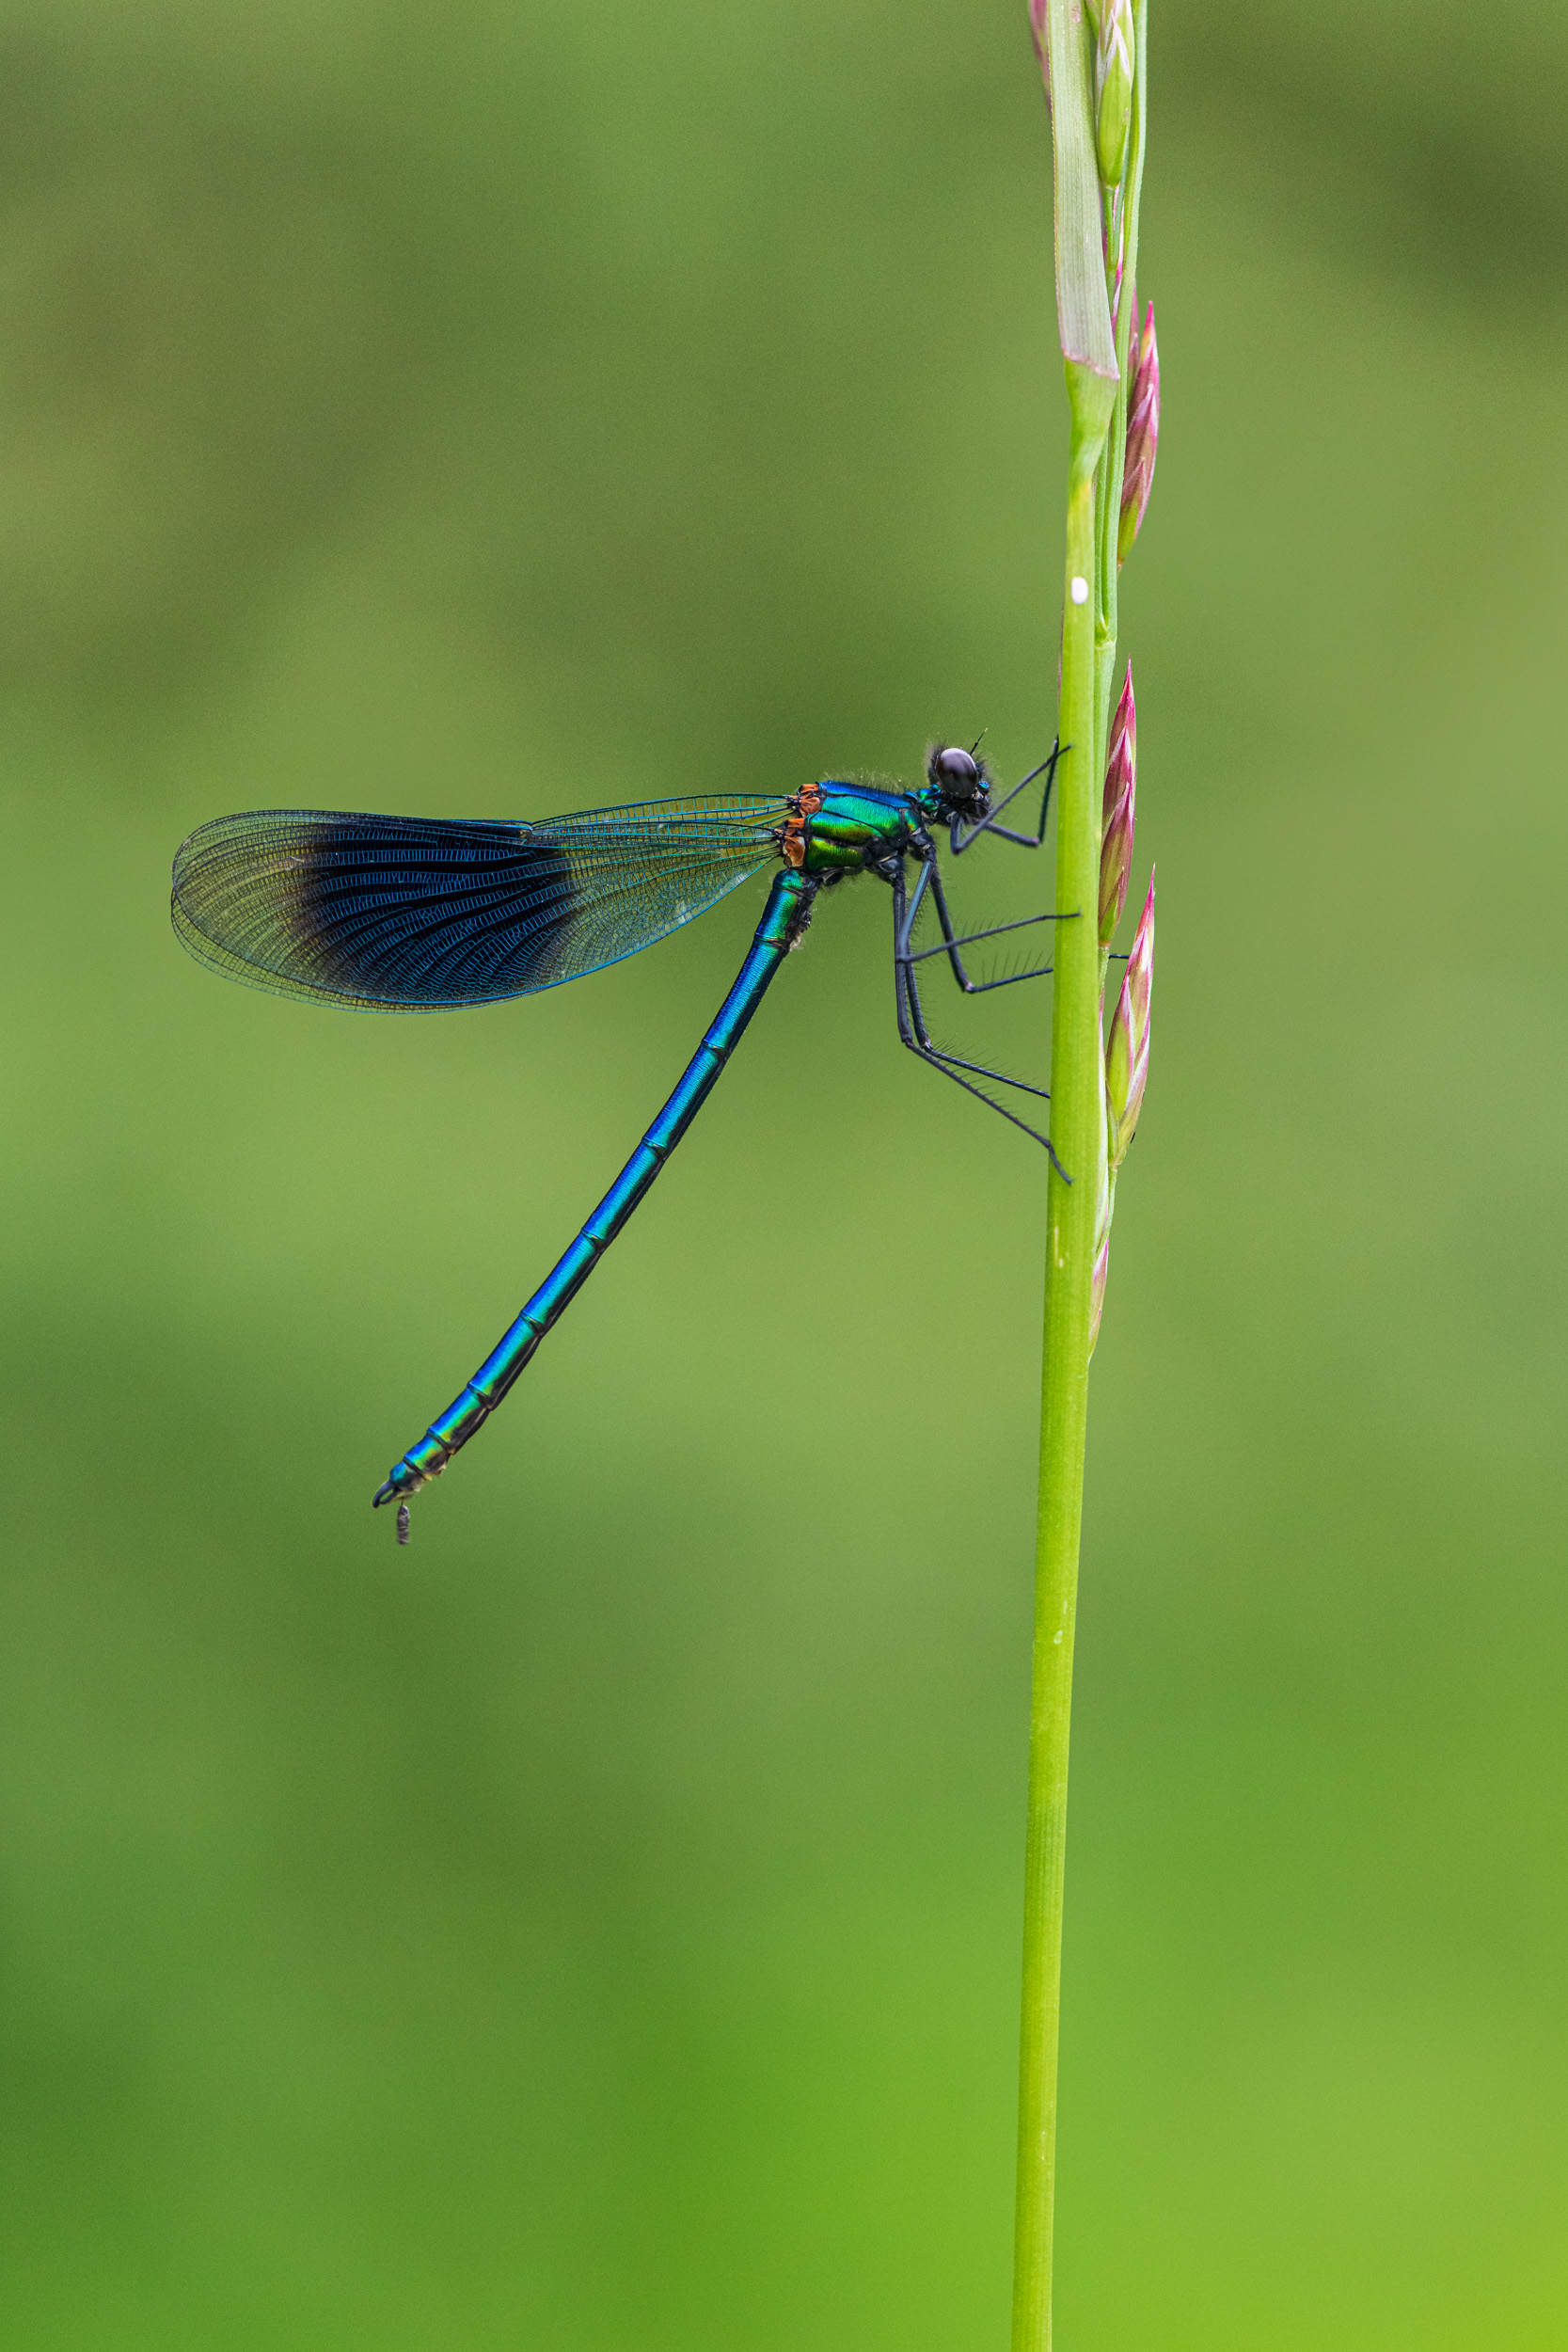 Banded Demoiselle (Calopteryx Splendens), Male - Nikon D850, Nikkor 105mm Macro @ f/5.6, 1/125th second at ISO 1600.